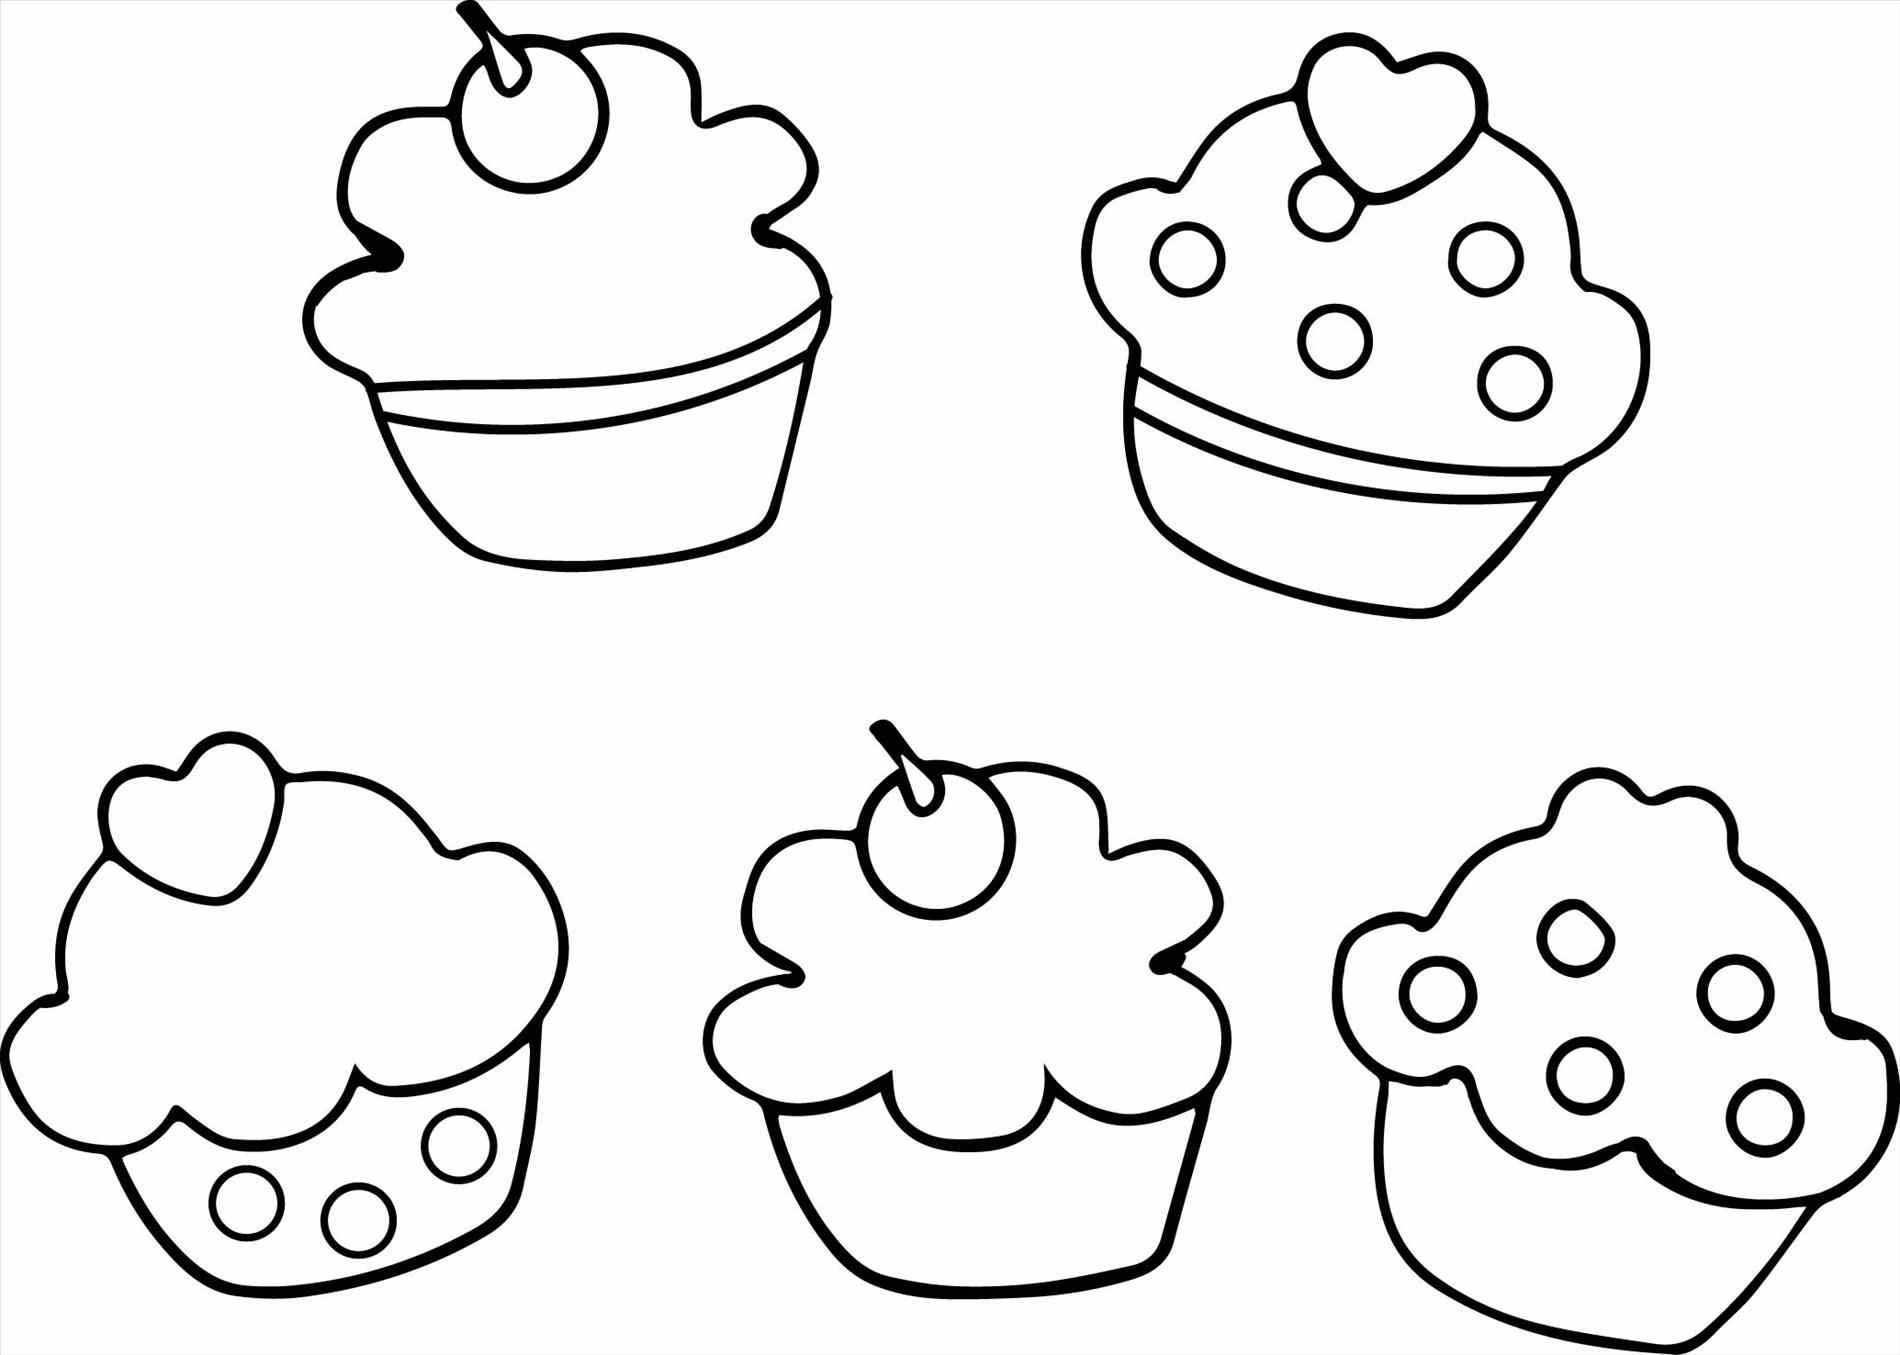 Cute Cupcake Drawing at GetDrawings.com | Free for personal use Cute ...